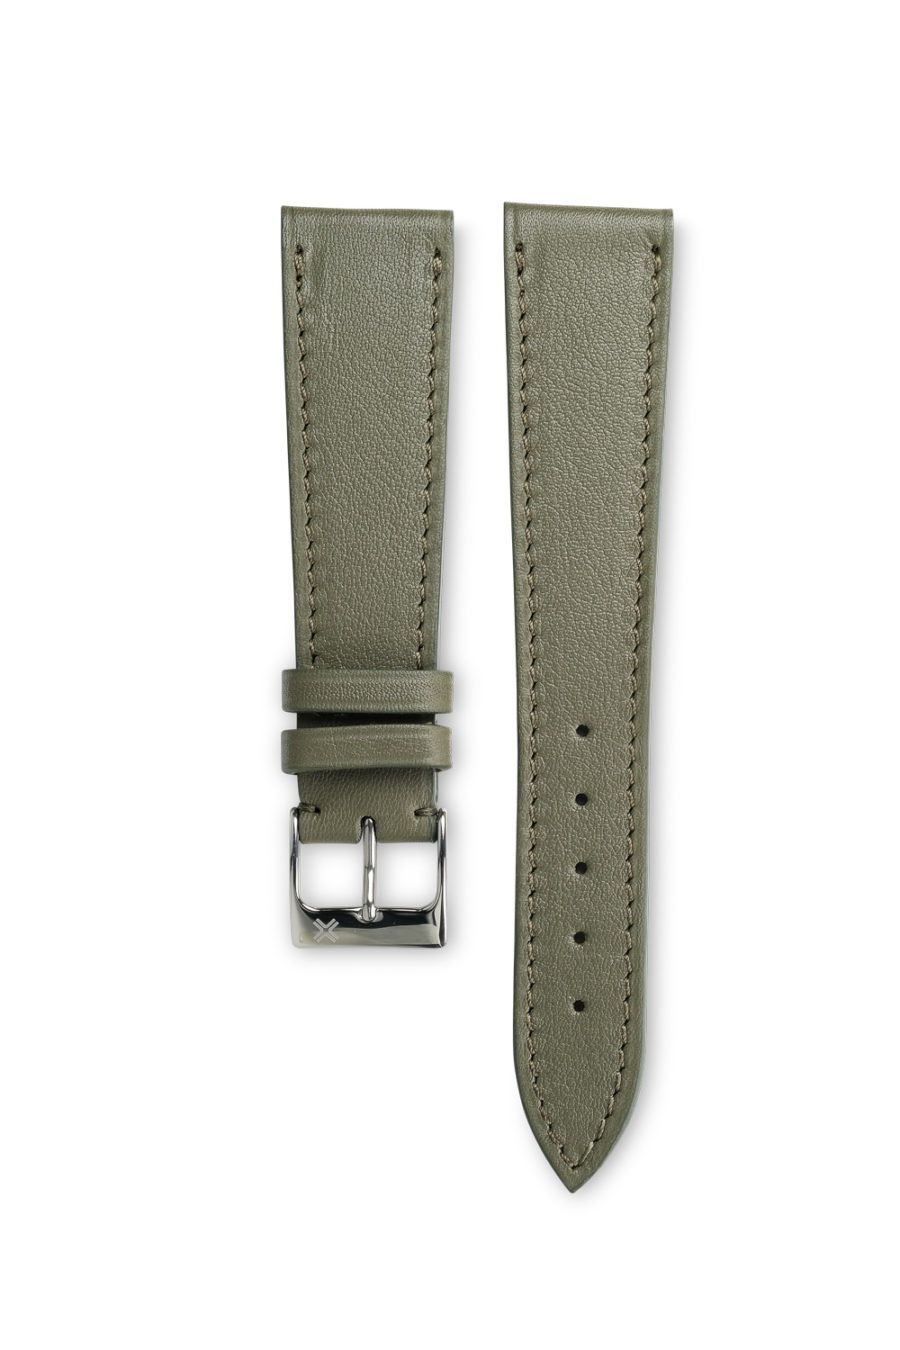 Smooth classic khaki green leather watch strap - tone on tone stitching - LUGS brand